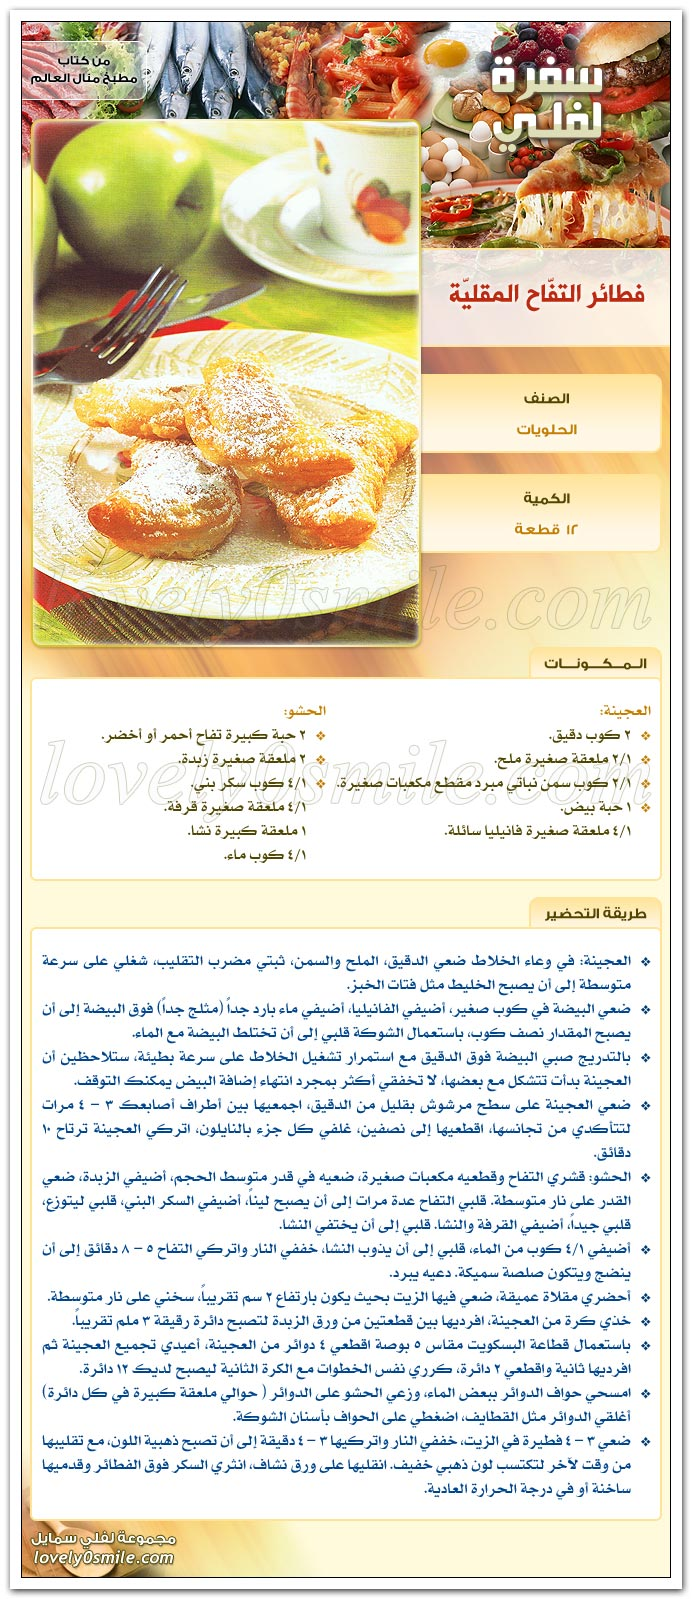 http://www.qassimy.com/up/users/qassimy/manal_alalem_cookbook_recipes_cooking_21.jpg